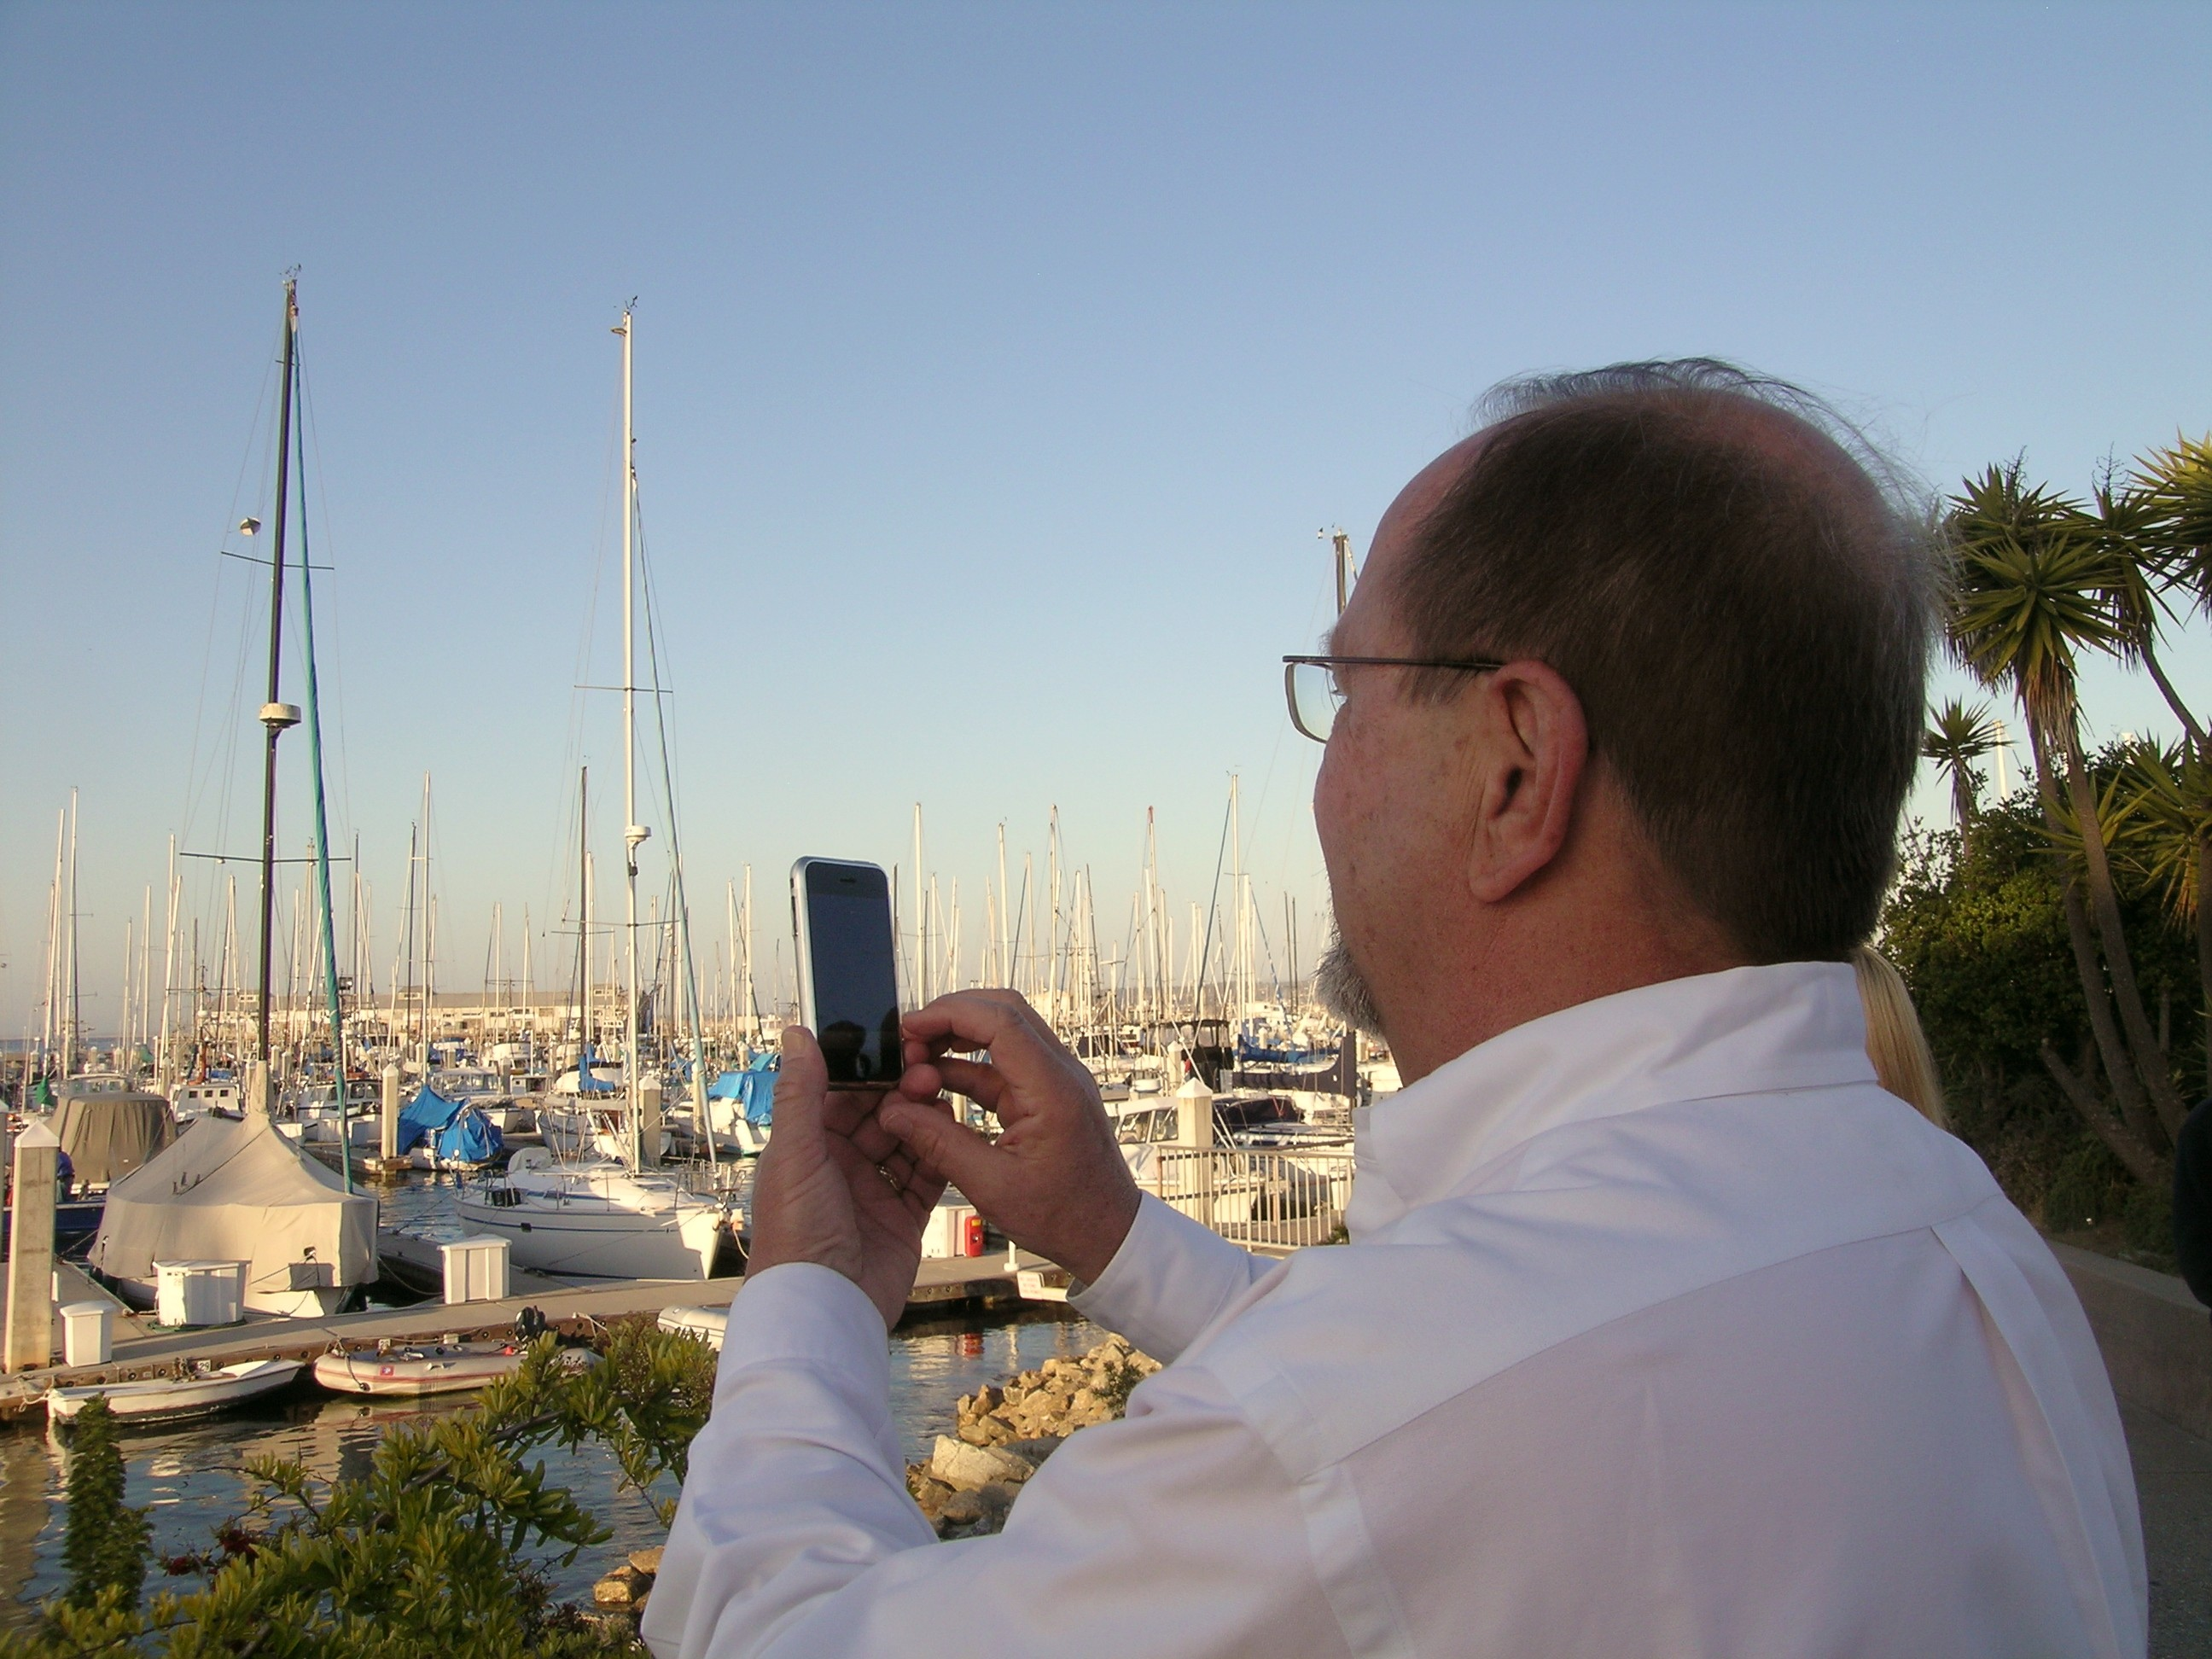 Michael Stumpf taking a photo of the boats at Fisherman\'s Wharf